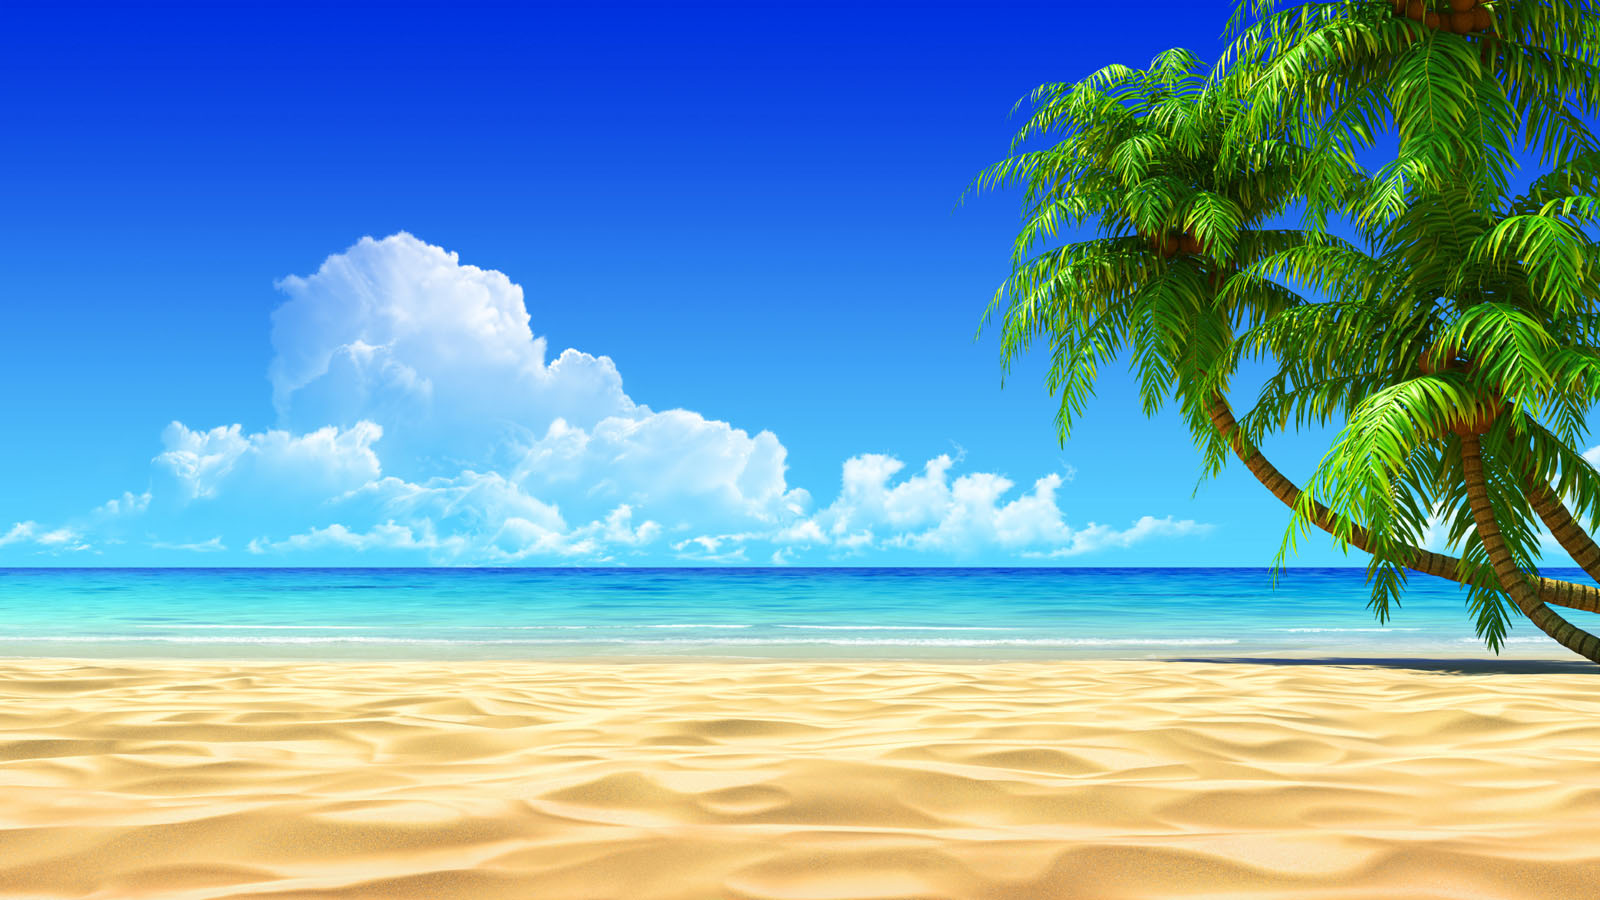 ... beach wallpaper ...